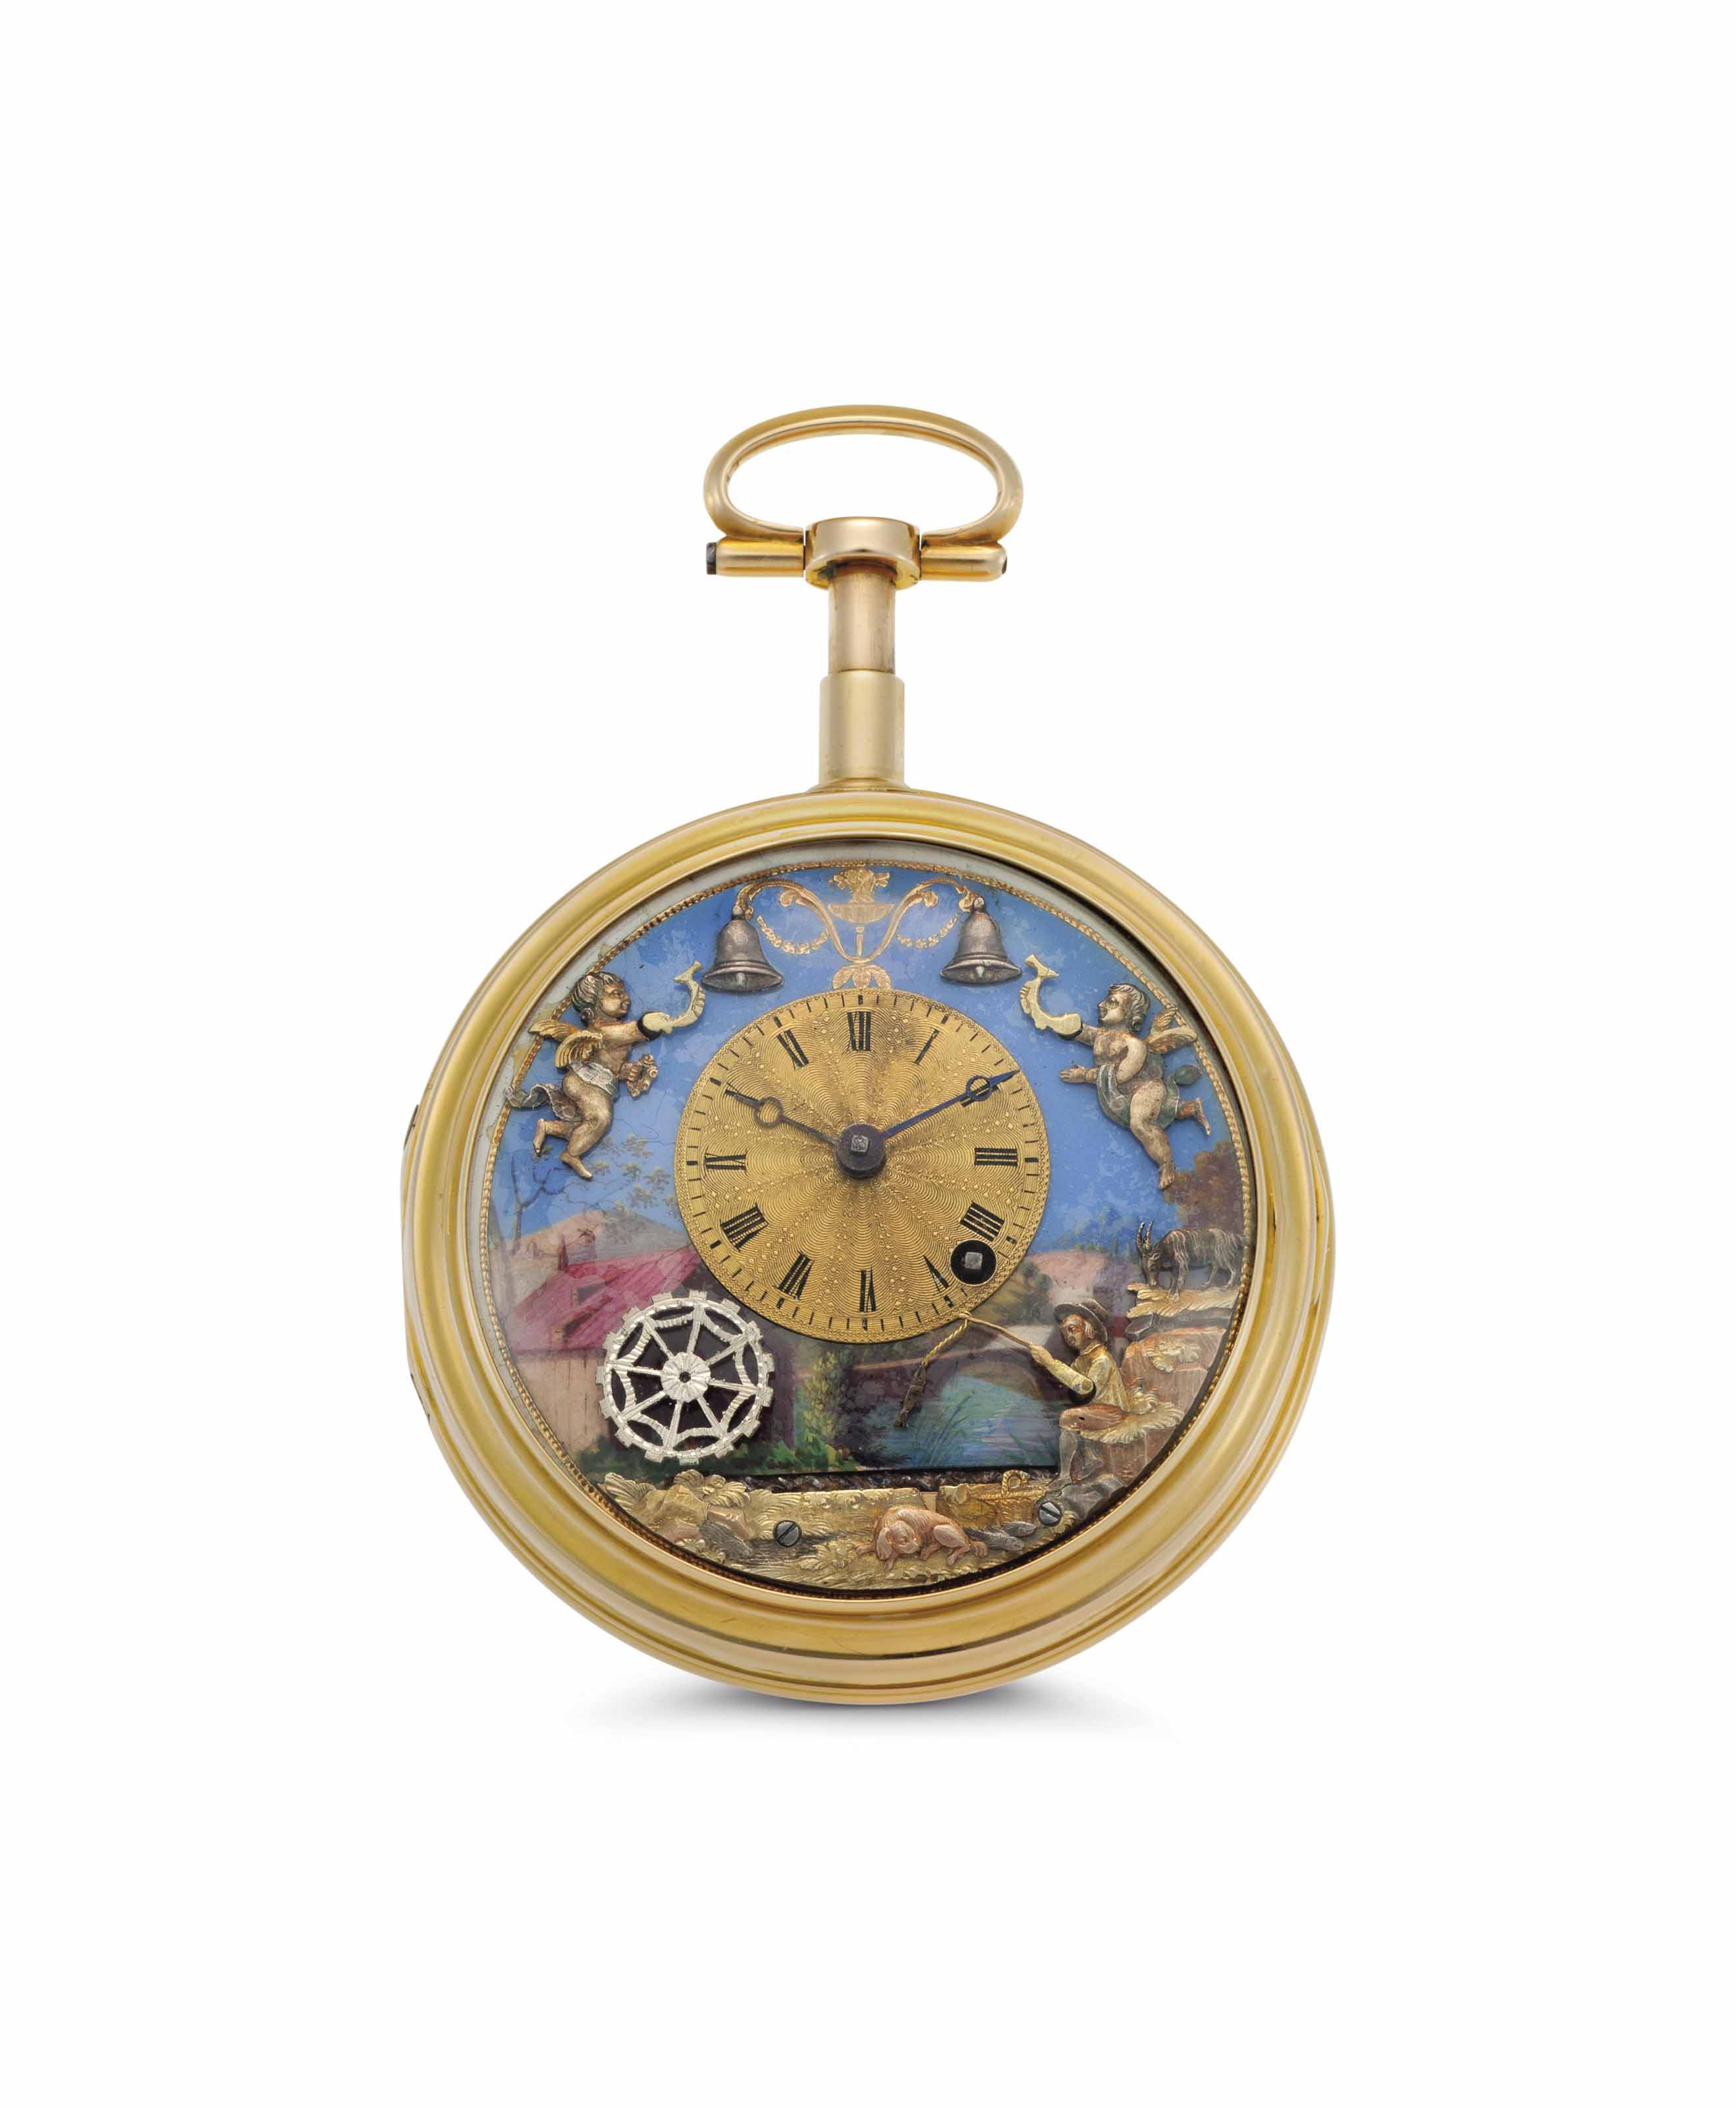 Anonymous. A Rare 18k Gold and Enamel Quarter Repeating Keywound Automaton Watch